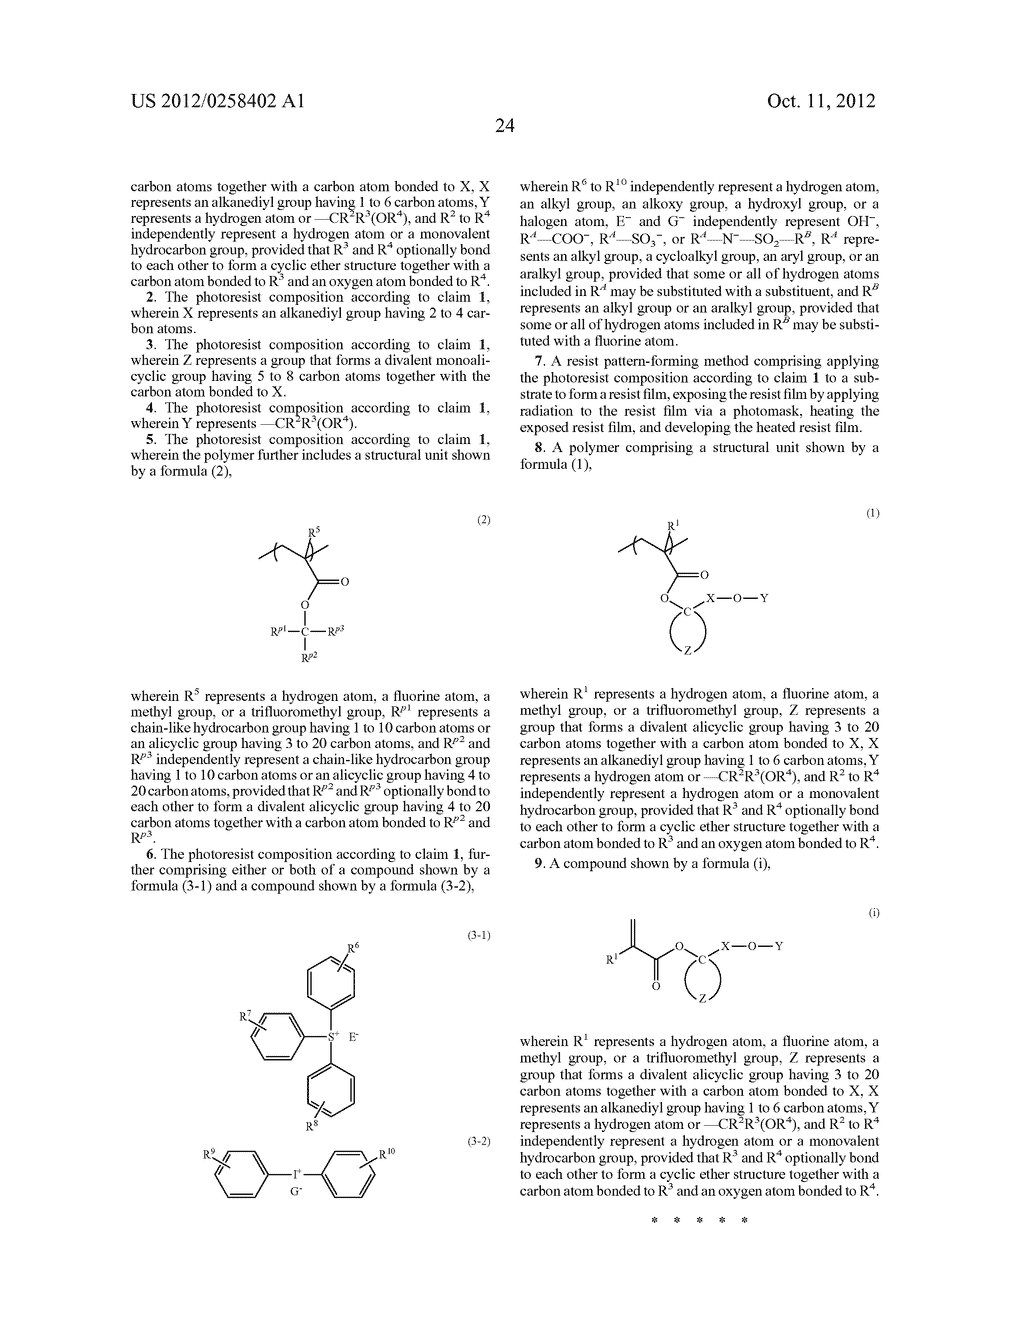 PHOTORESIST COMPOSITION, RESIST-PATTERN FORMING METHOD, POLYMER, AND     COMPOUND - diagram, schematic, and image 25